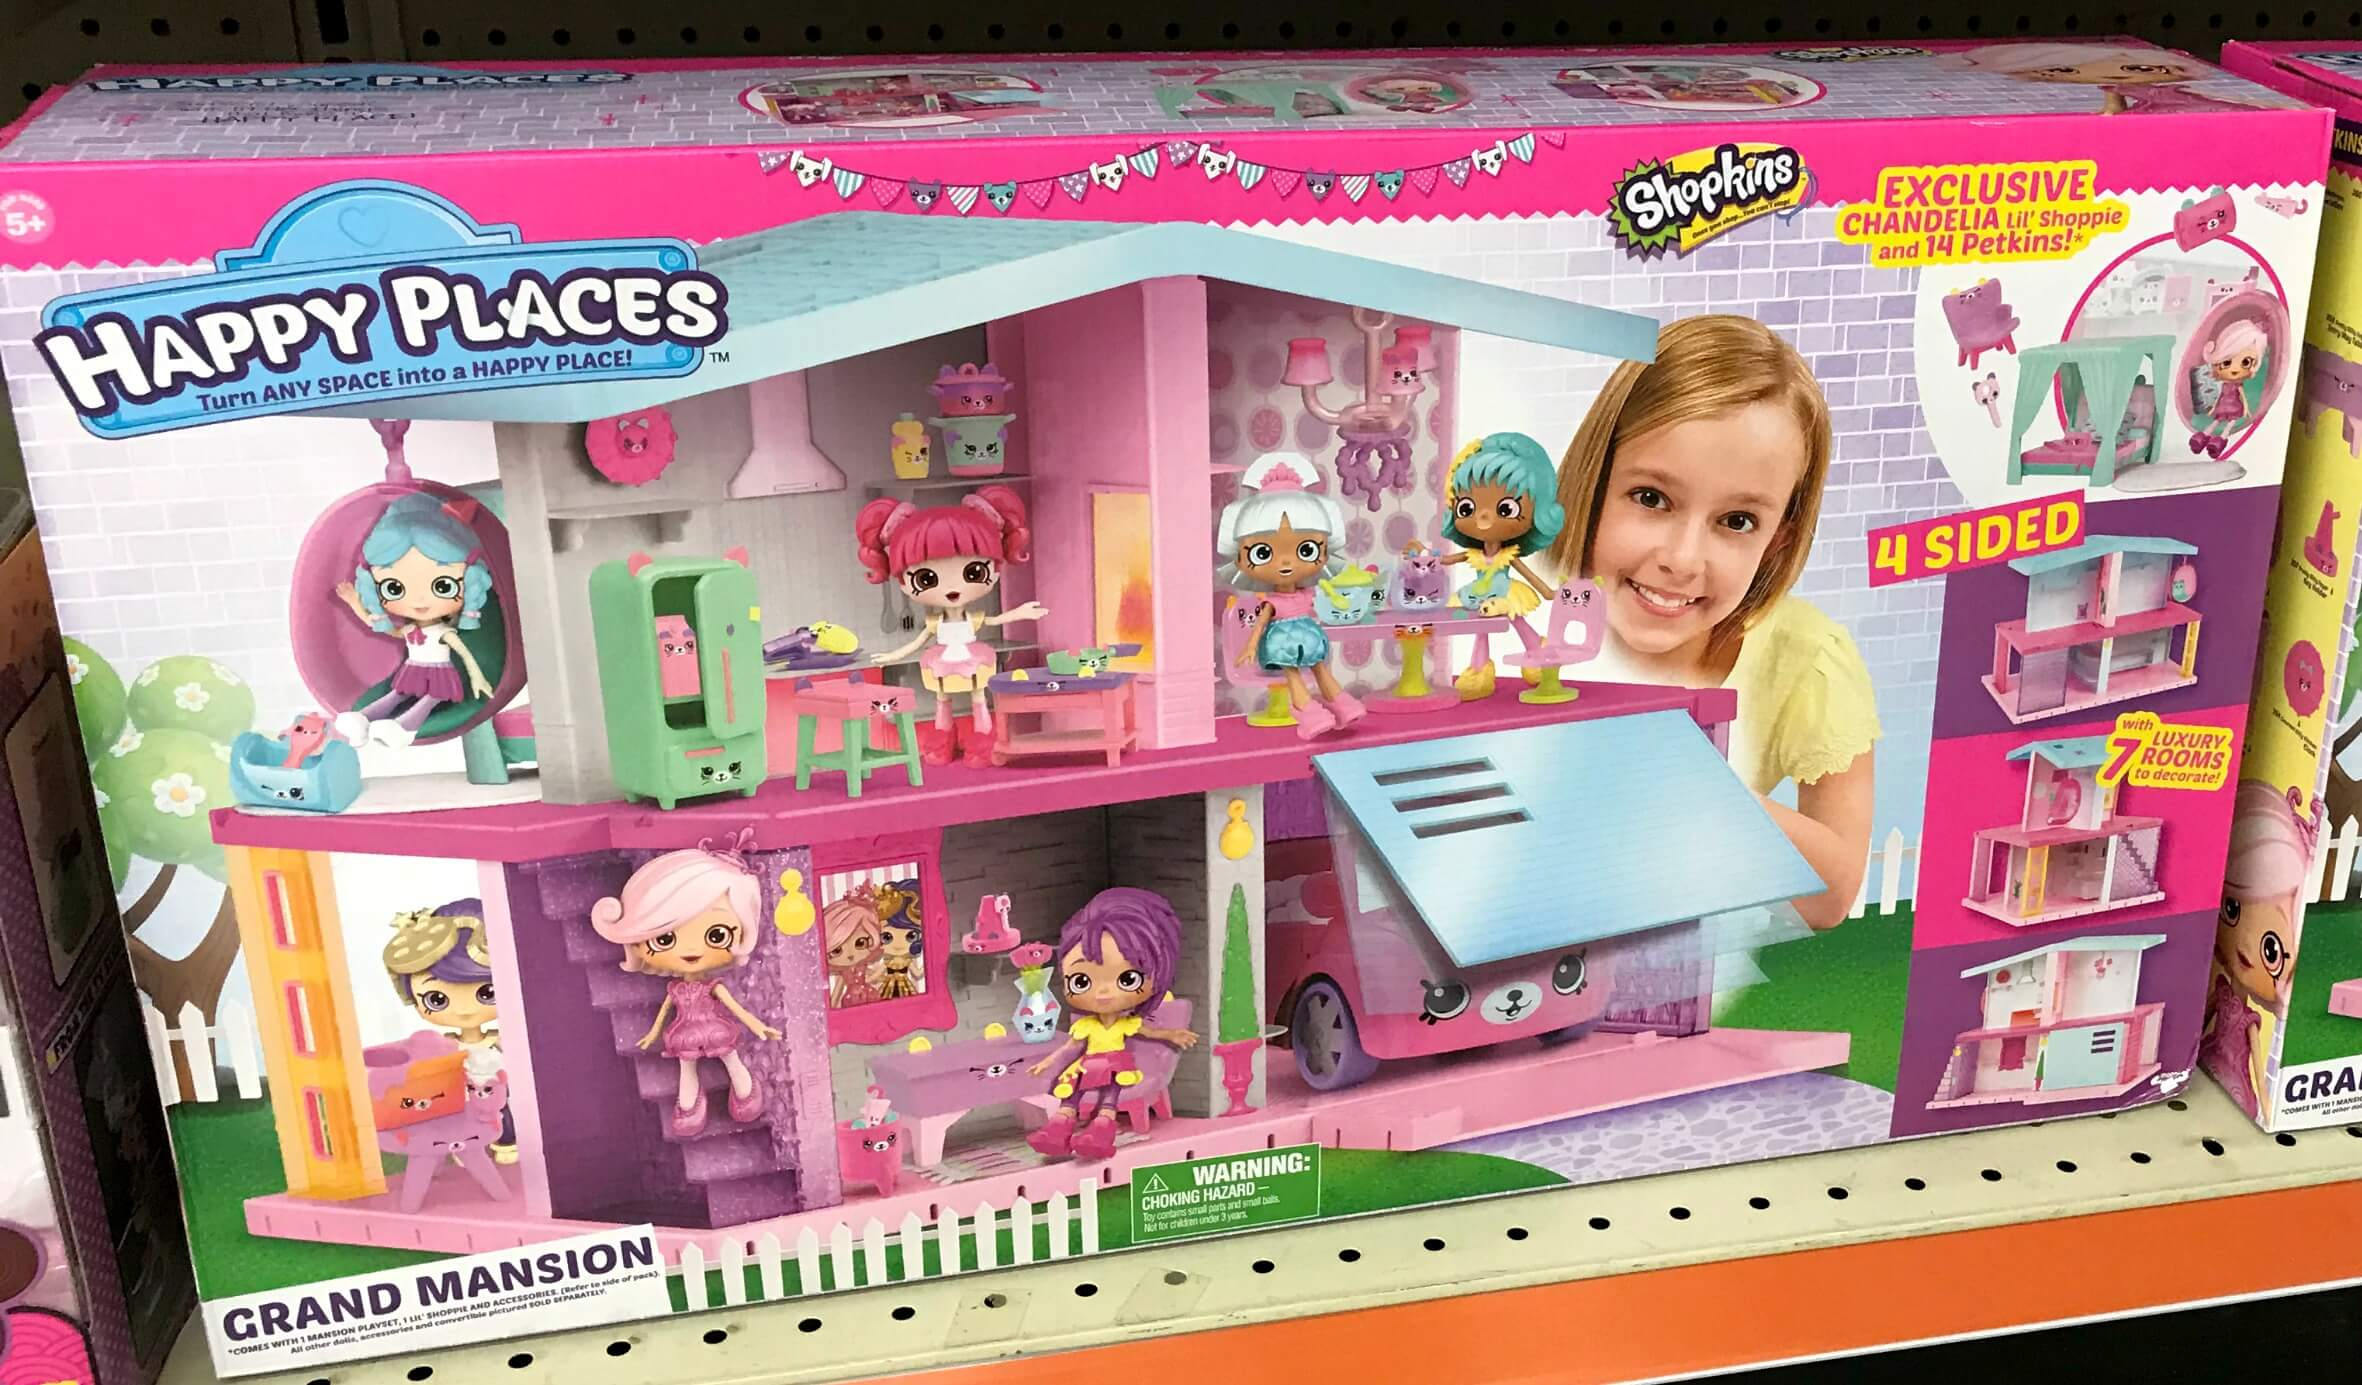 2017 Hot Toy List Top 13 Most Popular Toys Kids Are